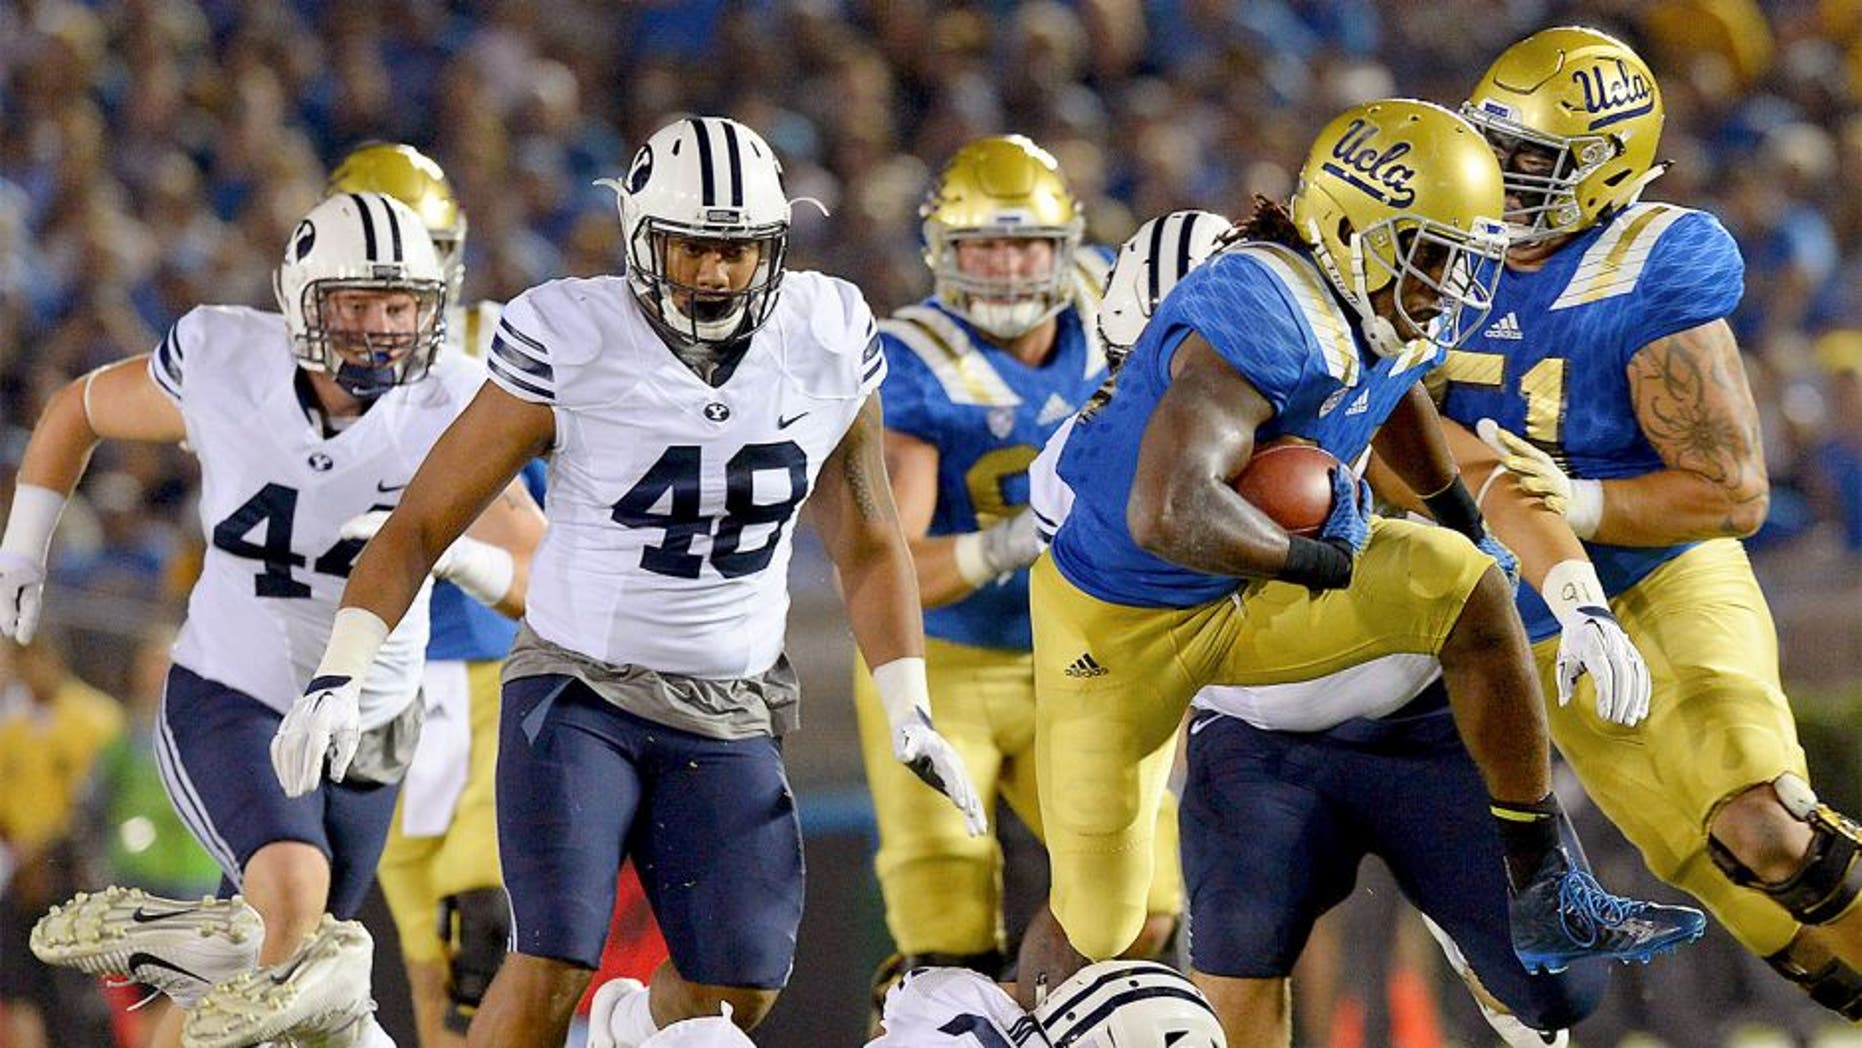 Sep 19, 2015; Pasadena, CA, USA; UCLA Bruins running back Paul Perkins (24) is stopped by Brigham Young Cougars linebacker Manoa Pikula (22) after a gain in the second quarter of the game at the Rose Bowl. Mandatory Credit: Jayne Kamin-Oncea-USA TODAY Sports